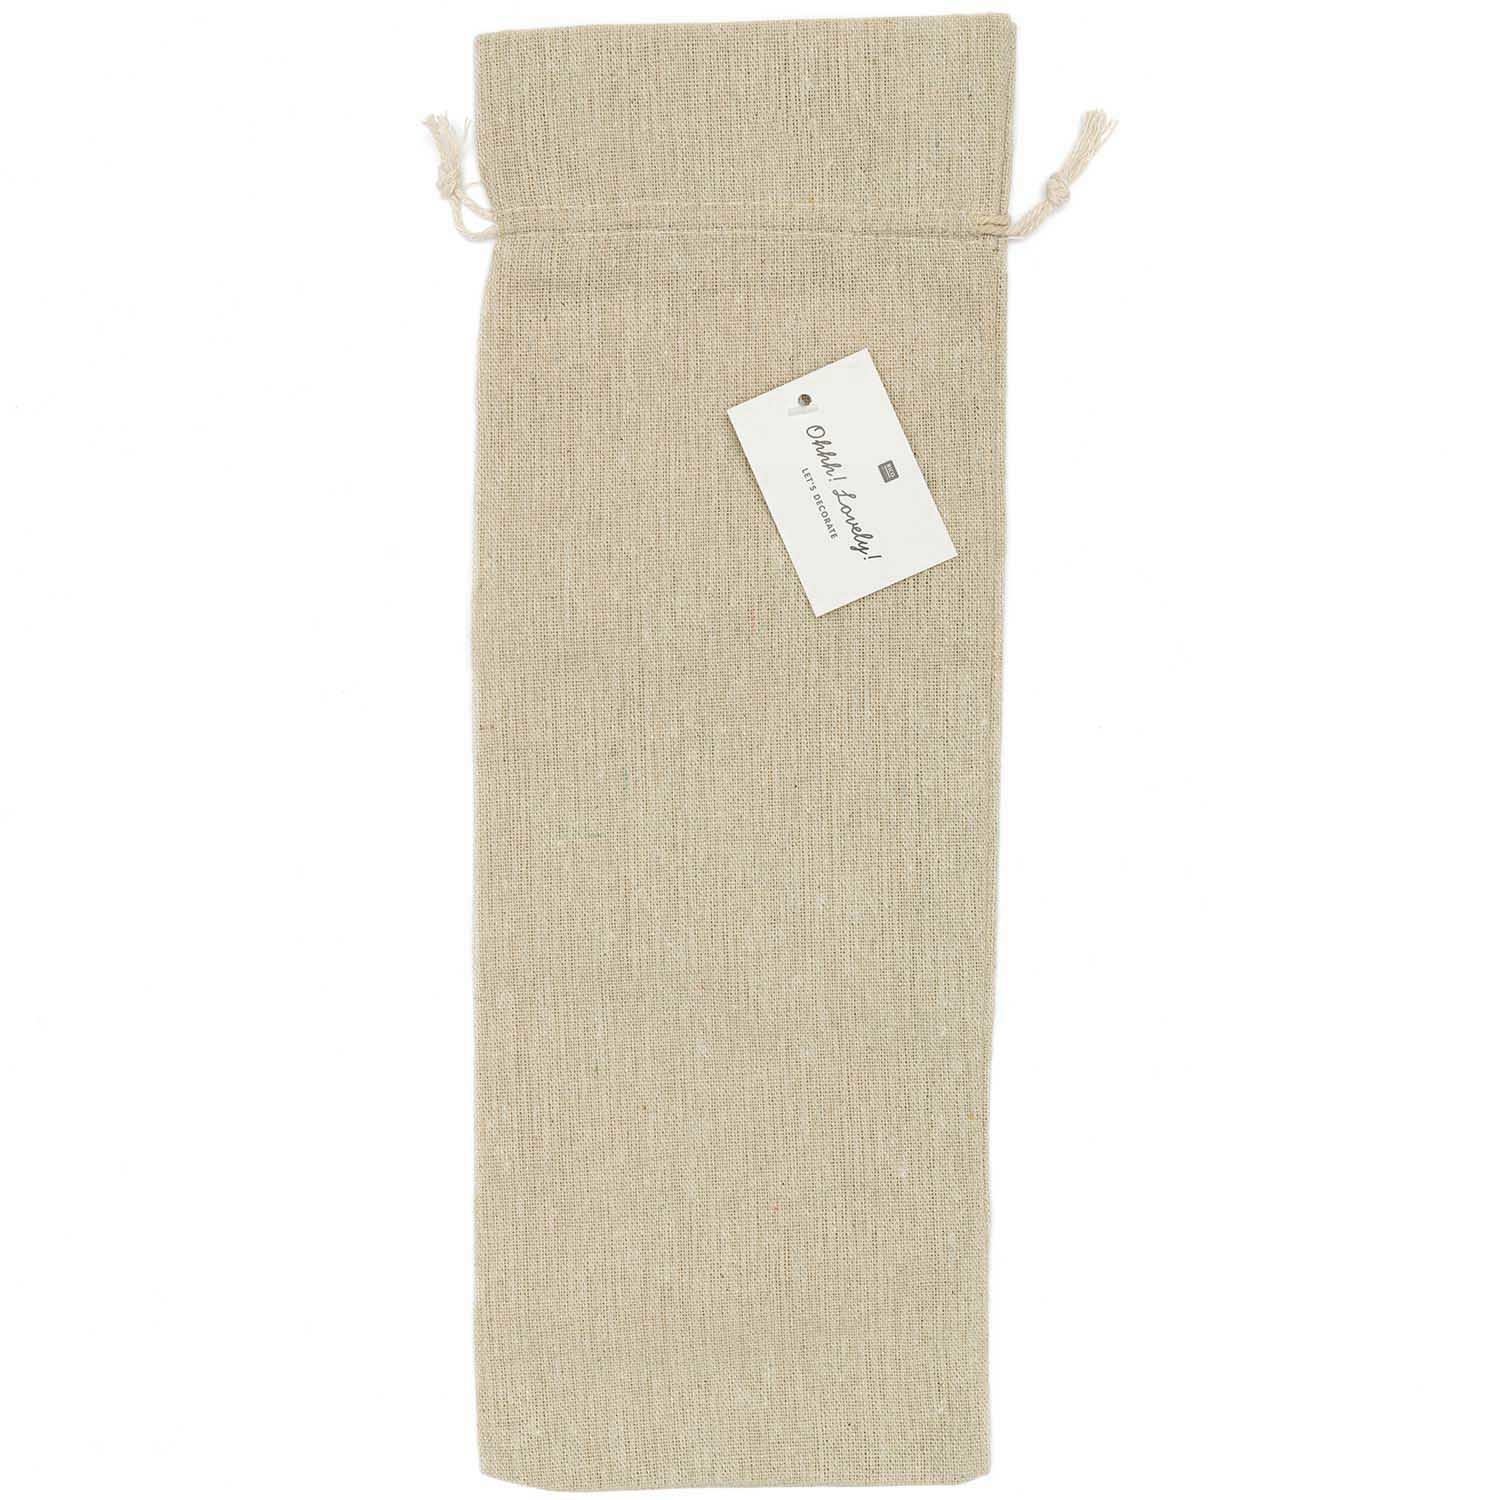 Rico NAY BAG JUTE LOOK NATURE, 13X39CM PER PIECE